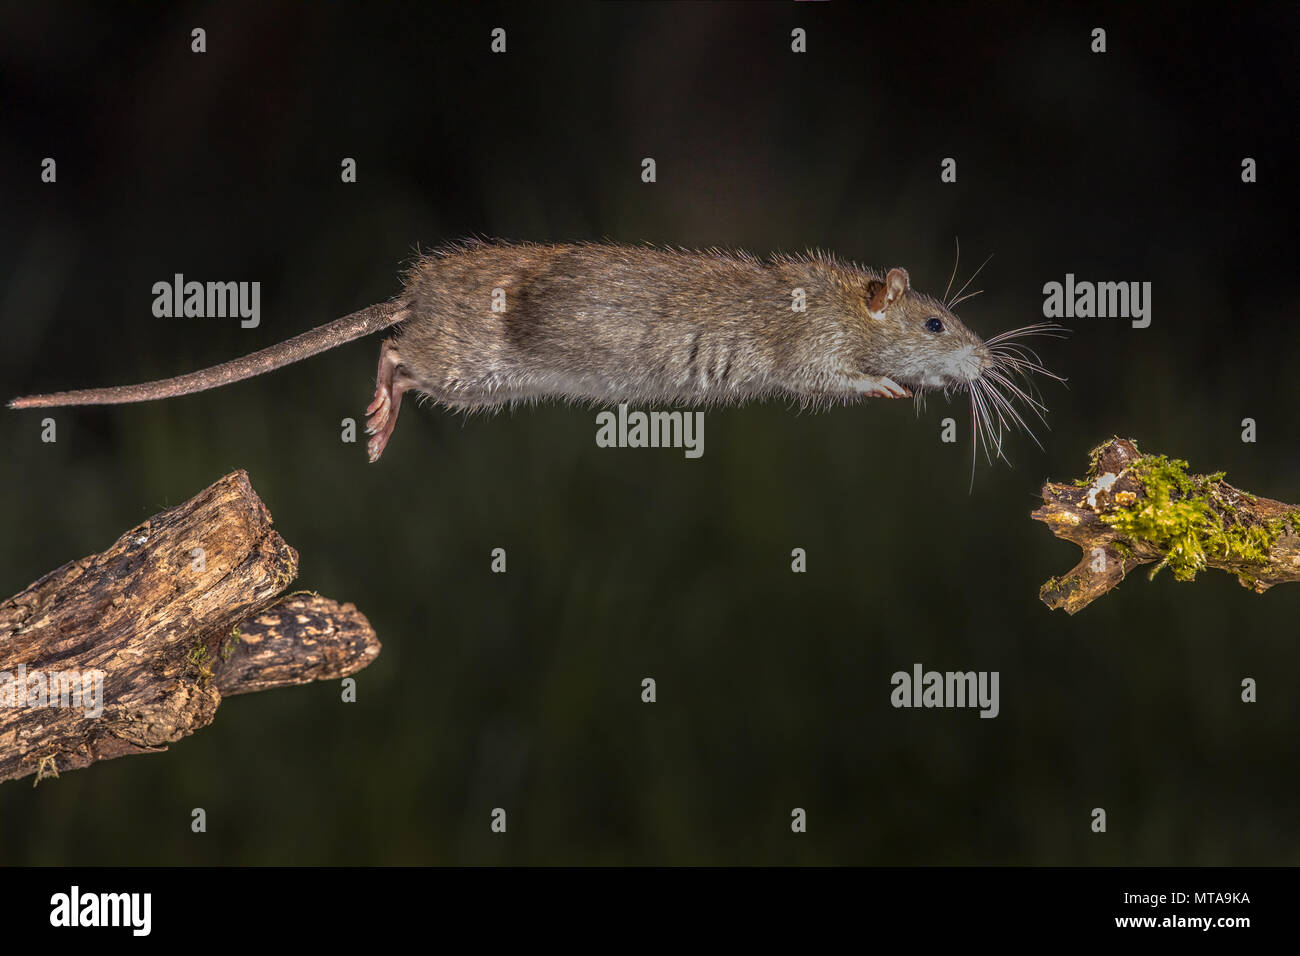 Wild Brown rat (Rattus norvegicus) jumping from log at night. High speed photography image - Stock Image